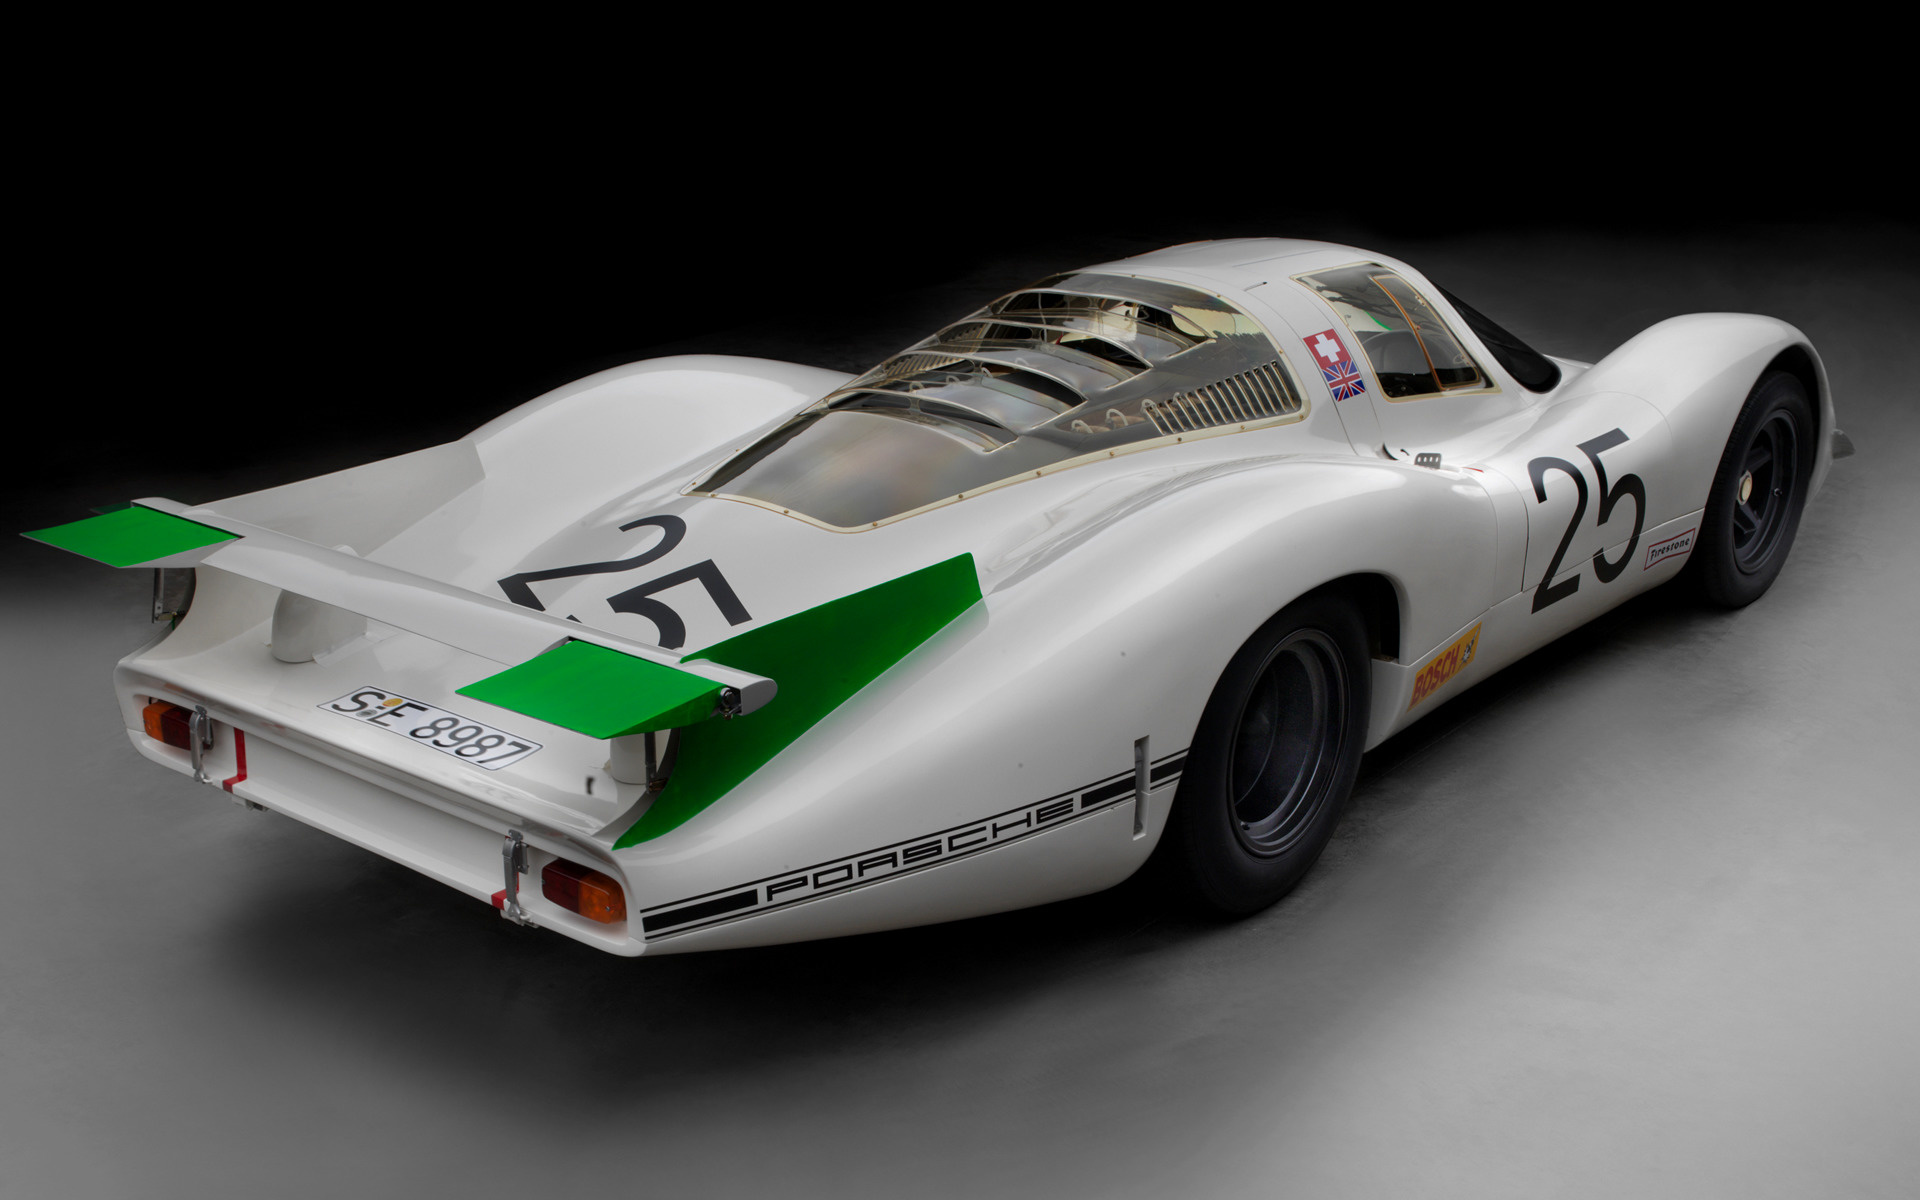 Porsche 908 Long Tail (1968) Wallpapers and HD Images - Car Pixel